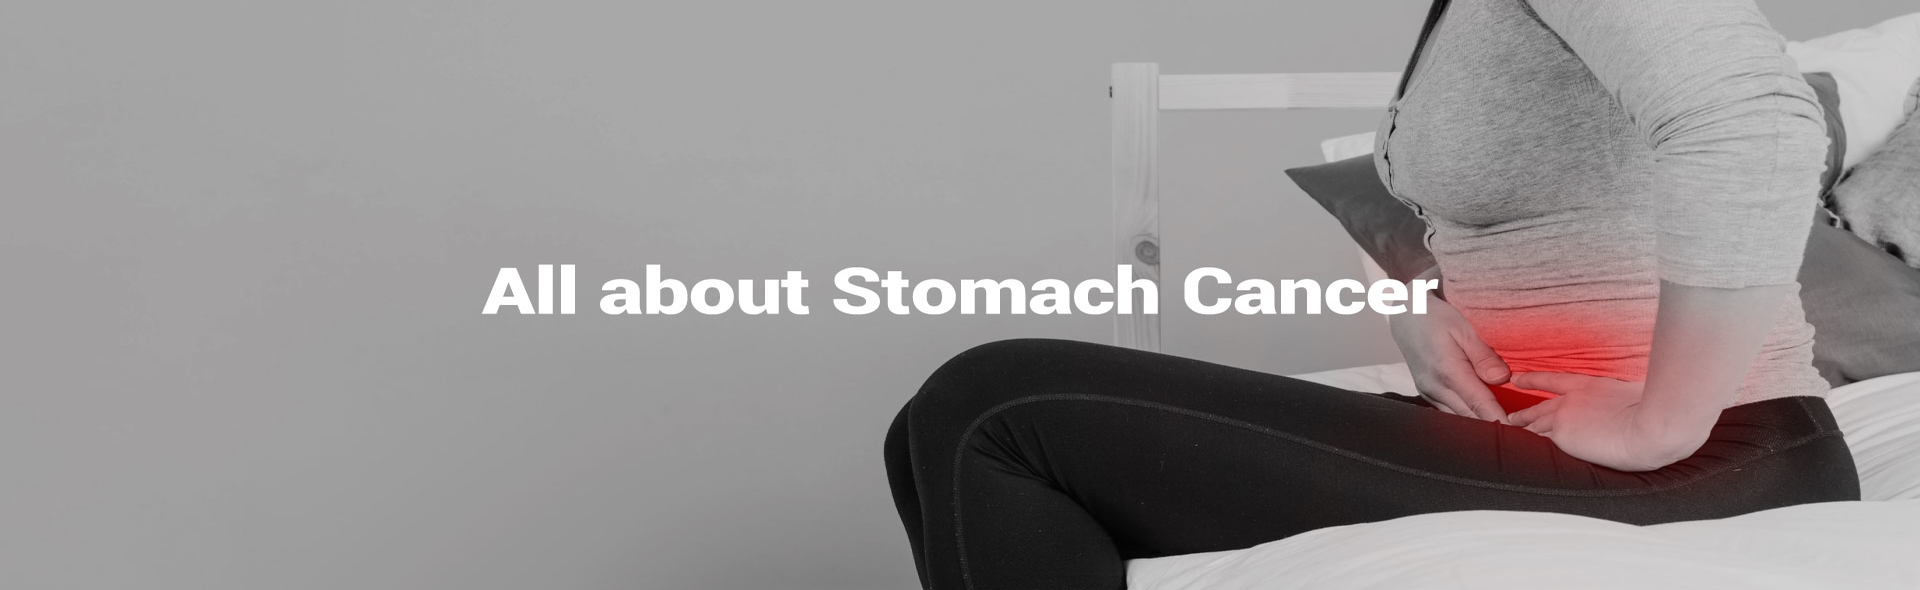 All About Stomach Cancer